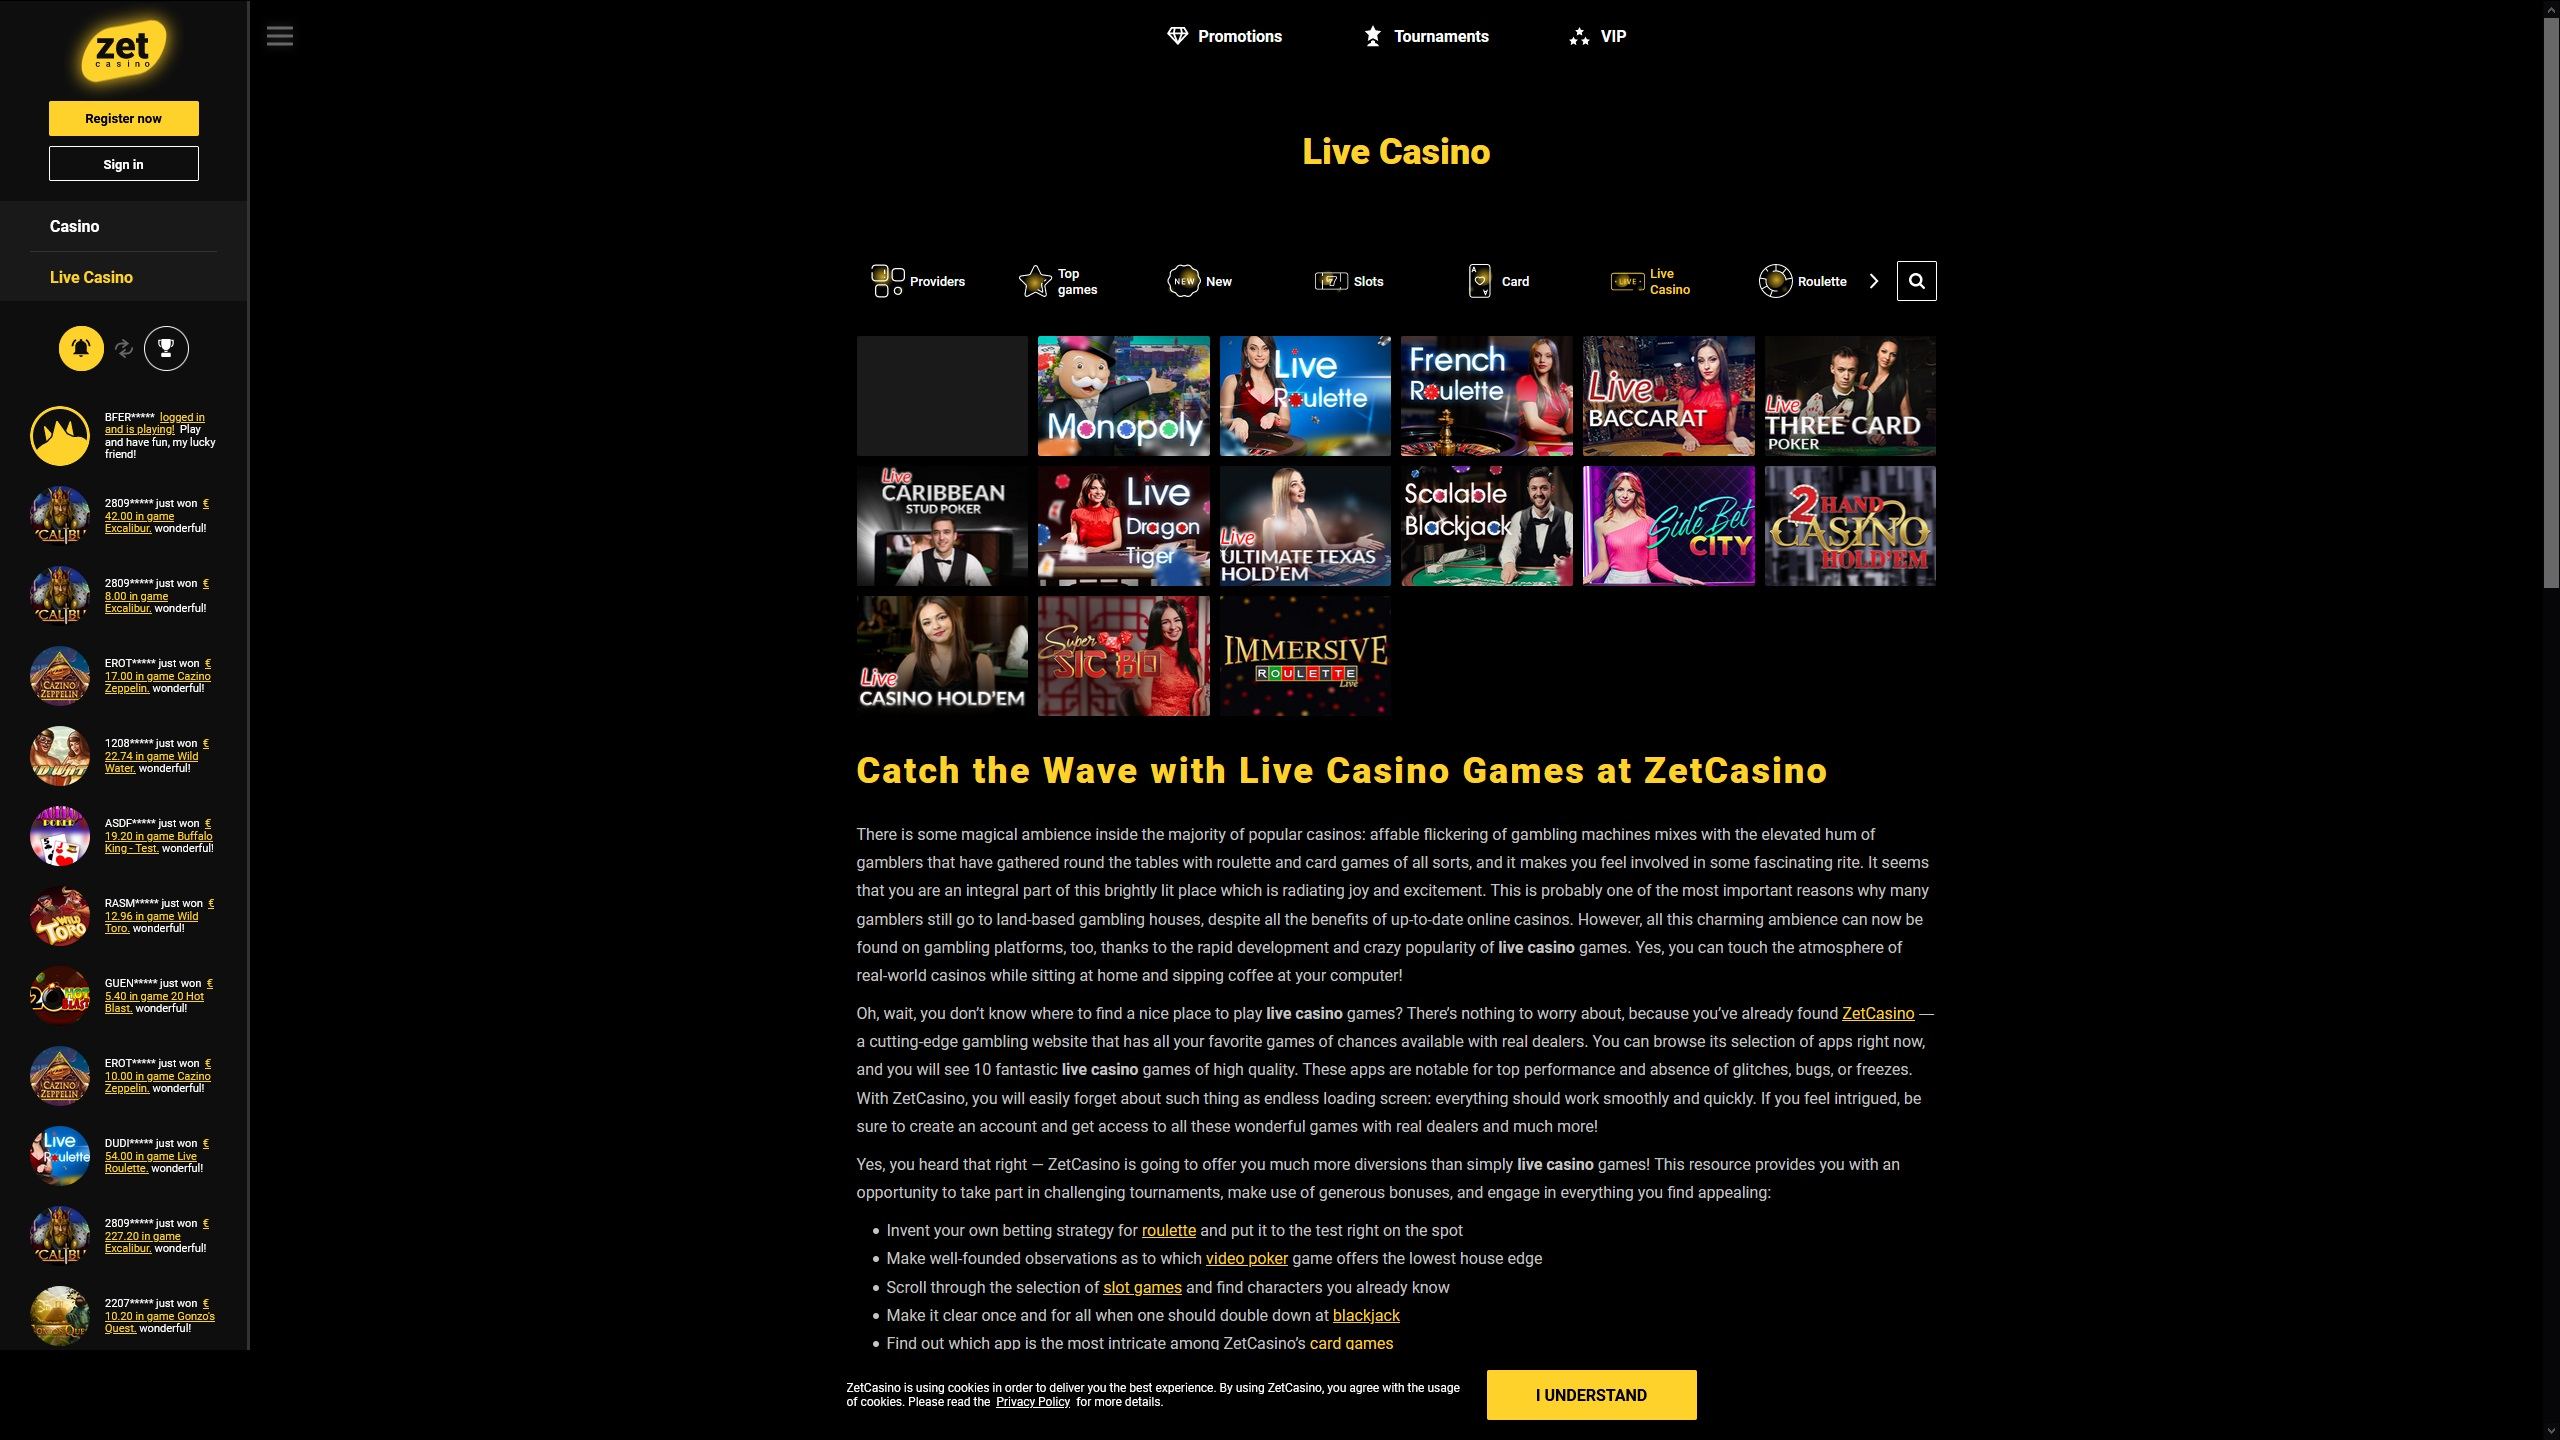 Try Zet Casino Live